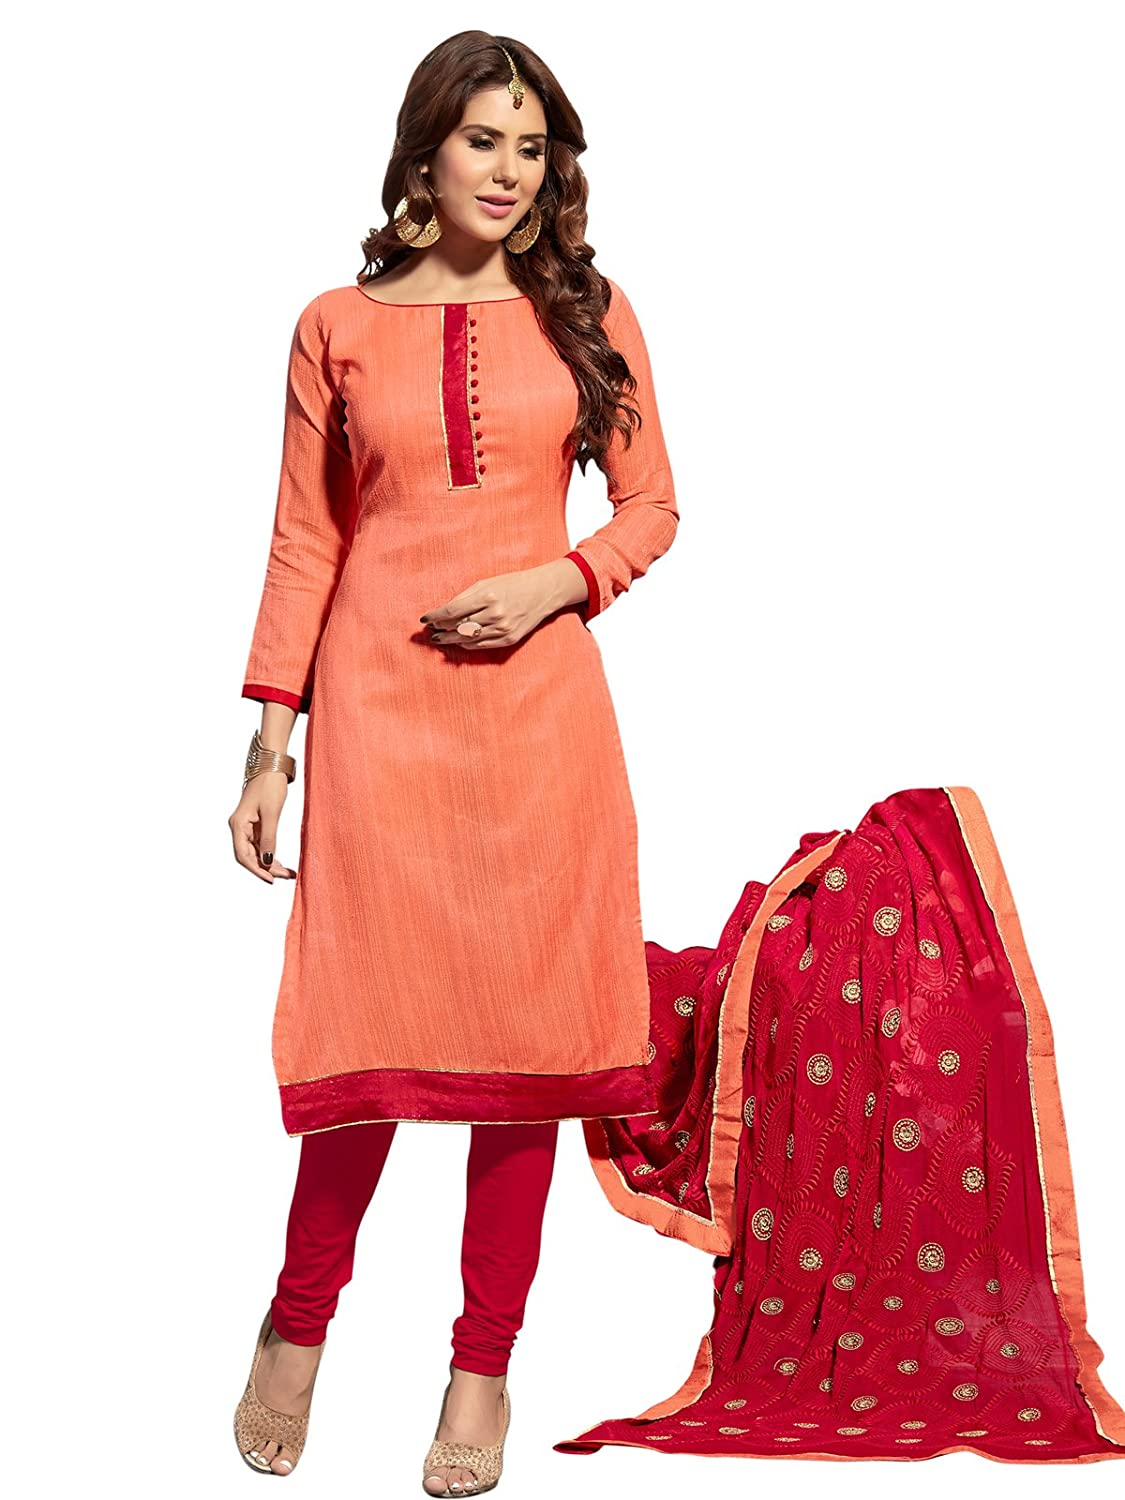 de572d1956 DHRUVI TRENDZ Jute Silk Solid Unstitched Dress Material with Embroidered  Dupatta(Orange): Amazon.in: Clothing & Accessories